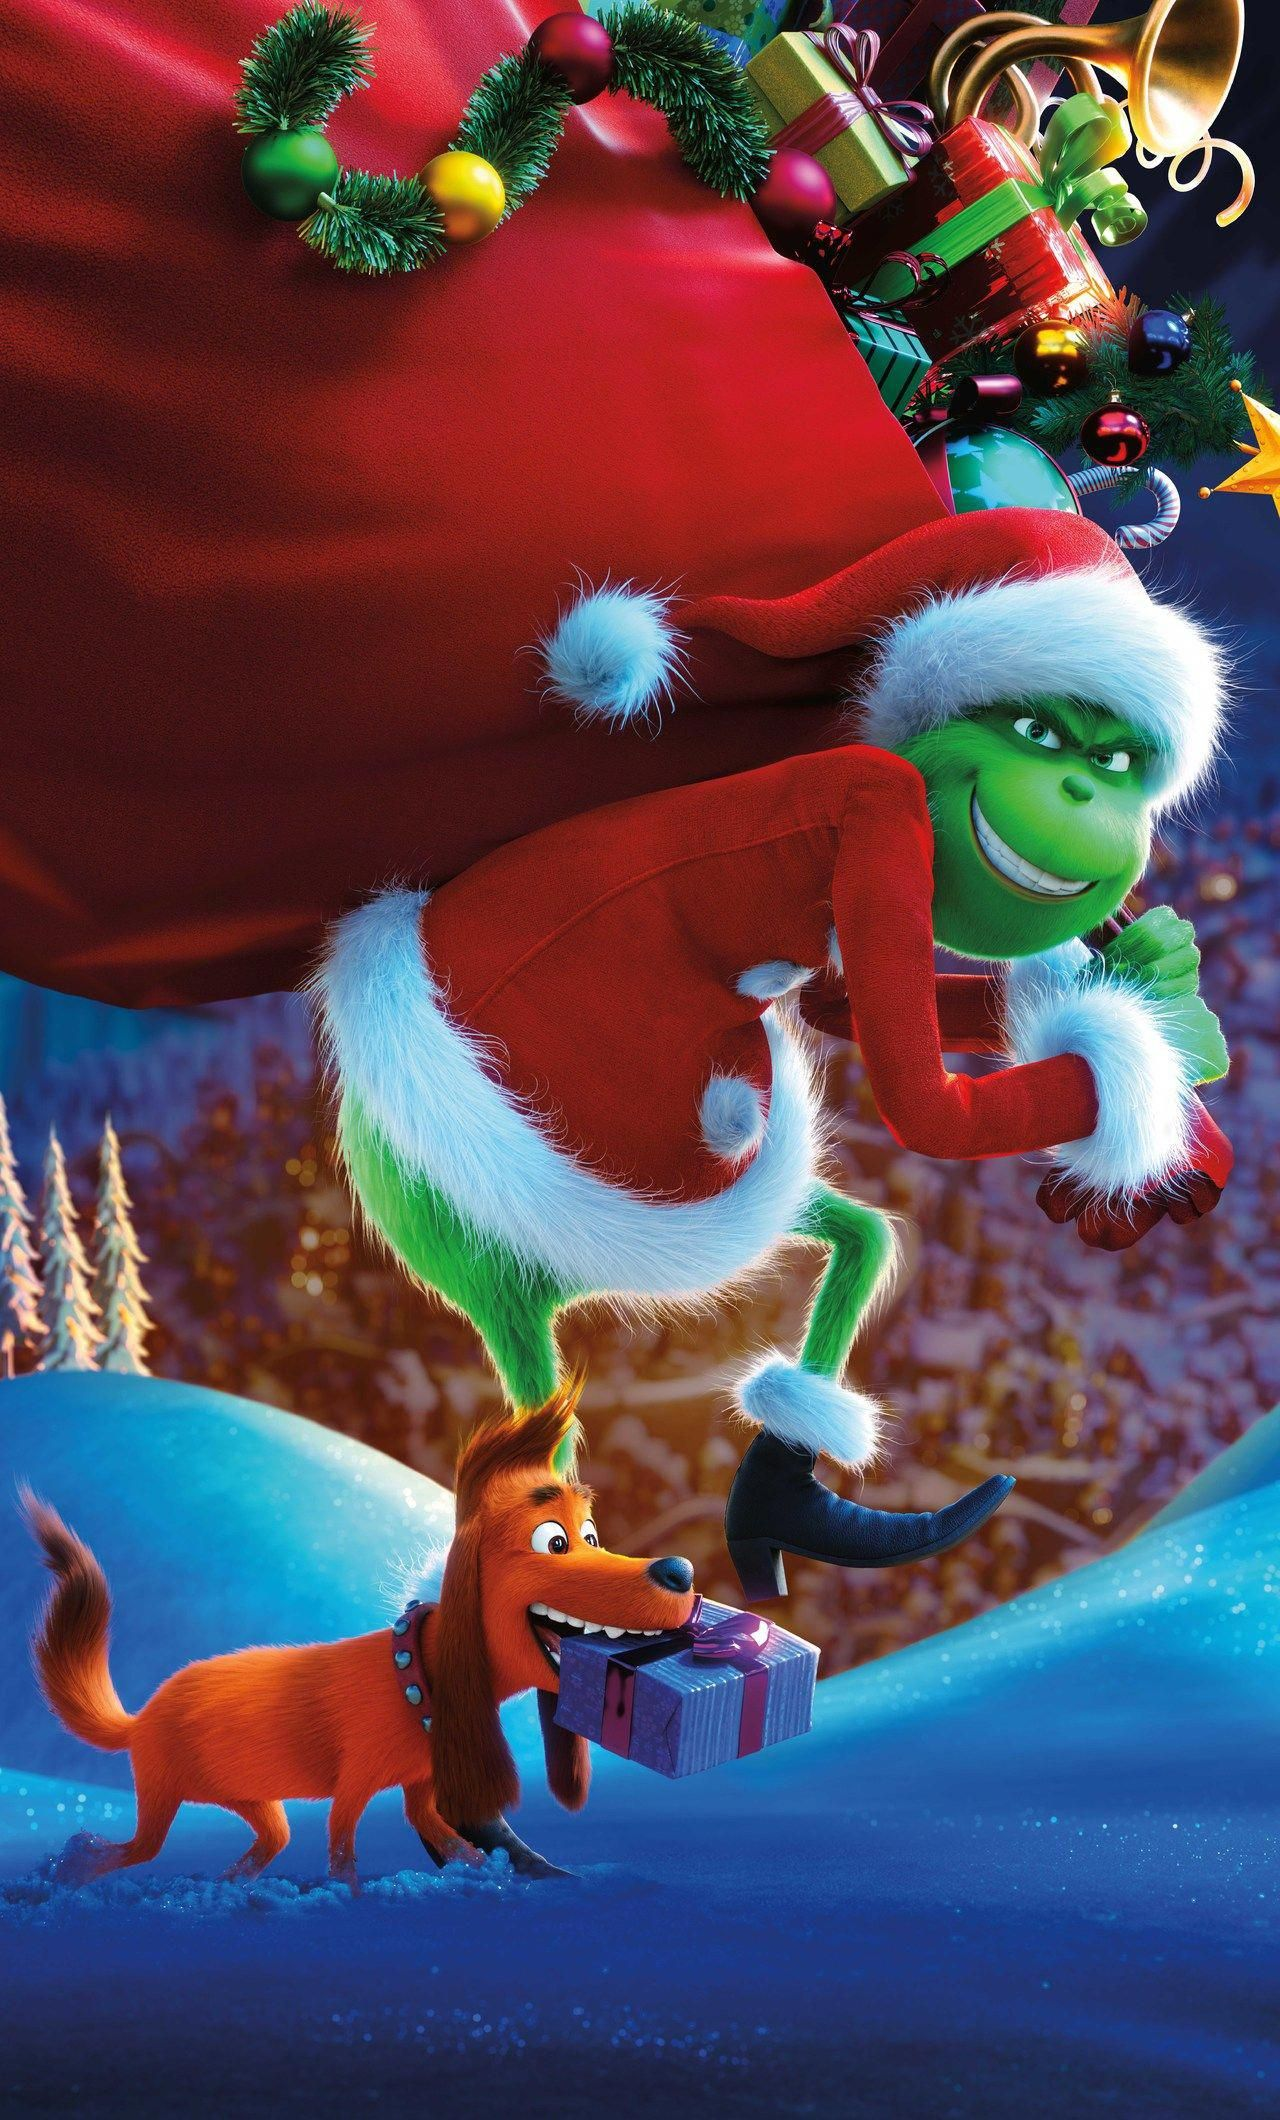 Image Result For The Grinch Iphone Wallpaper Iphonewallpaper The Grinch Movie The Grinch Full Movie Wallpaper Iphone Christmas